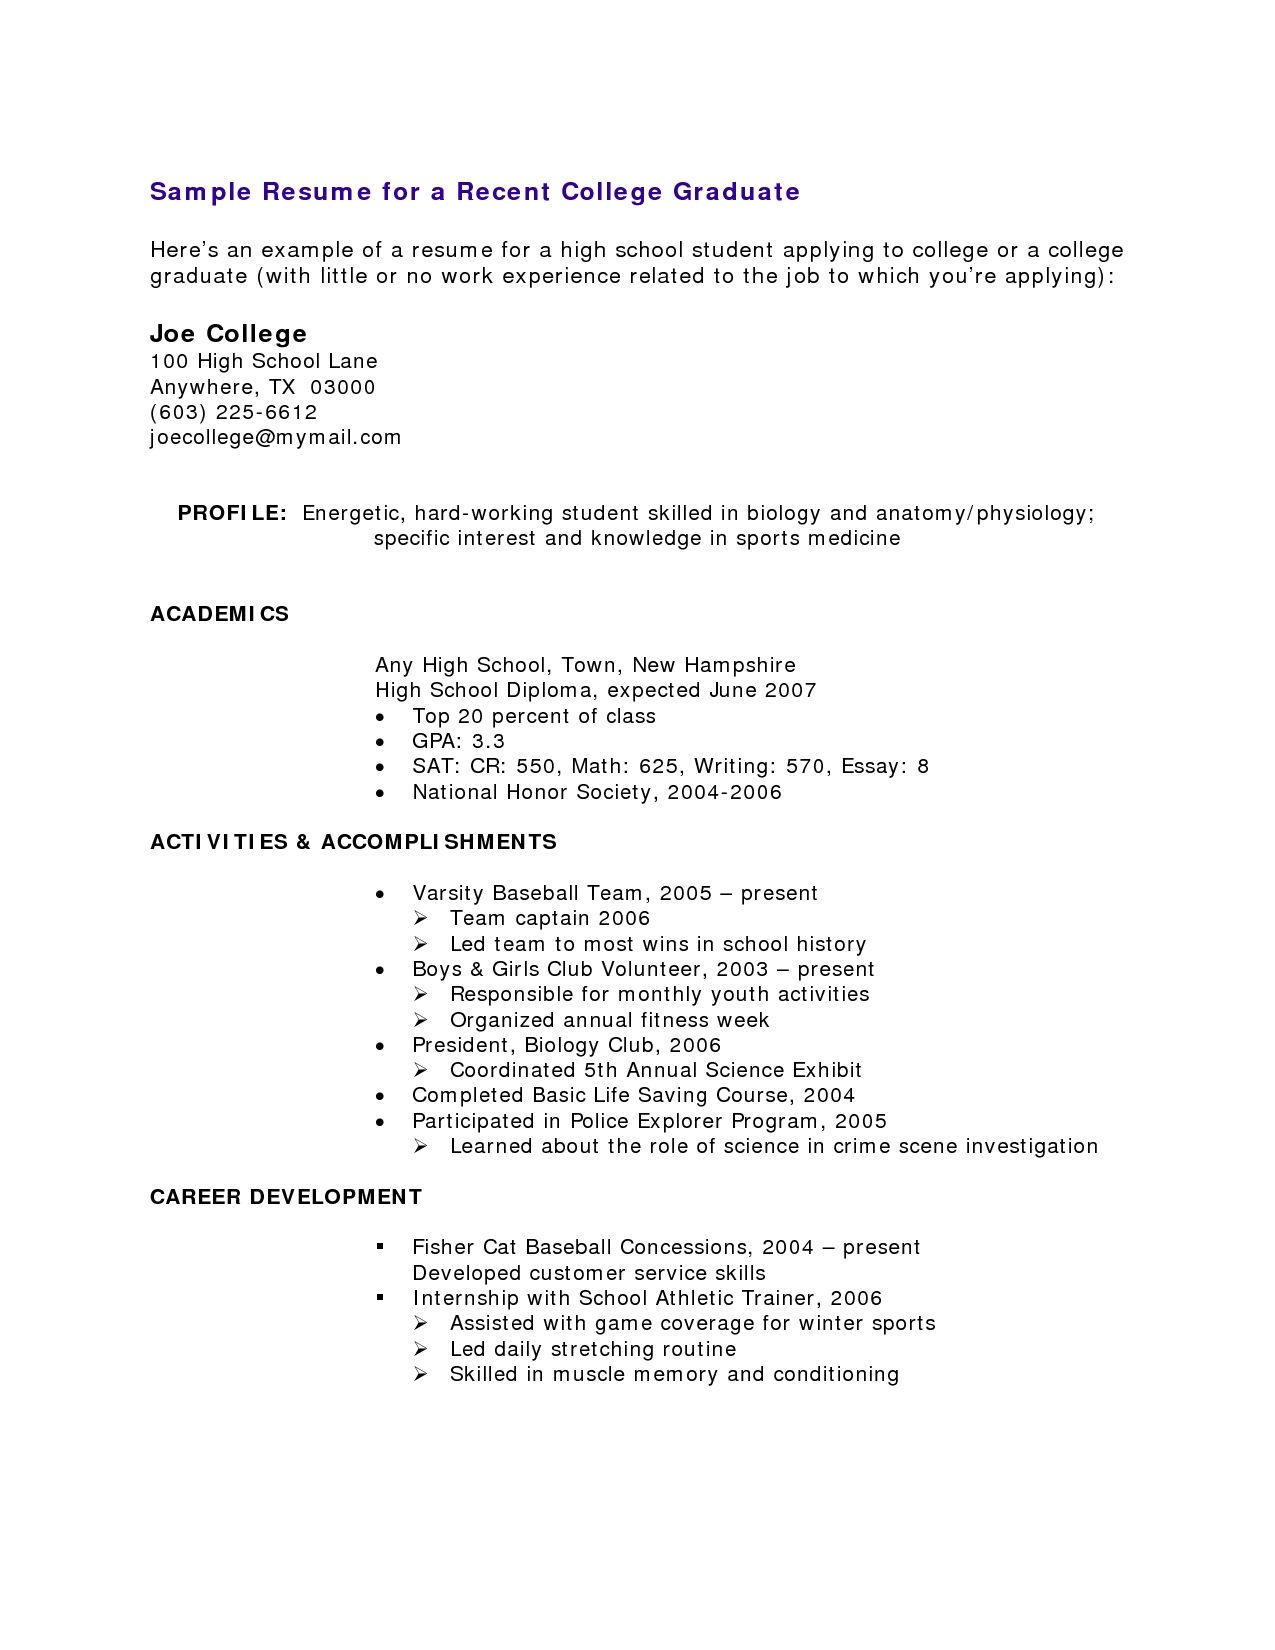 Resume Job Resume Examples Work Experience high school student resume with no work experience examples for students no